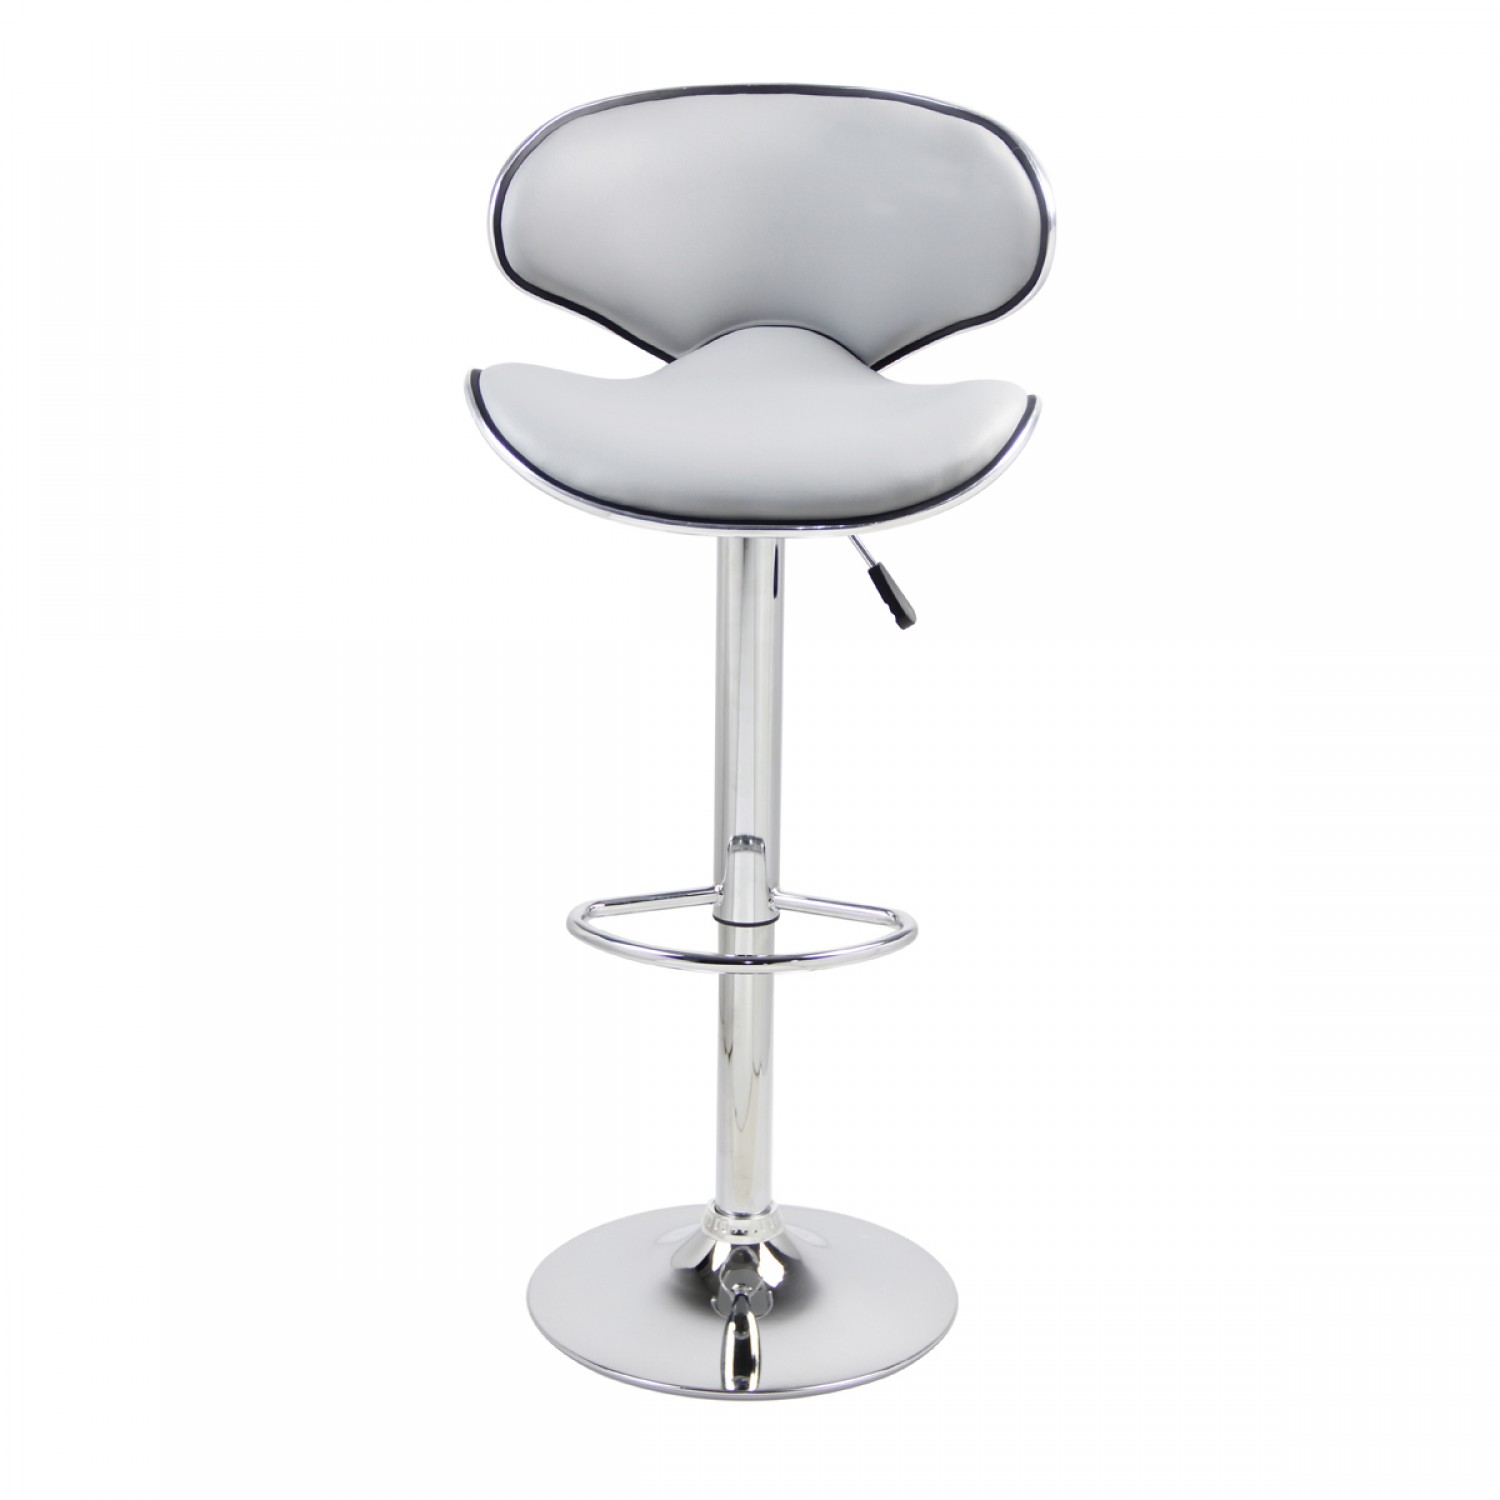 tabouret de bar pop gris lot de 2 koya design. Black Bedroom Furniture Sets. Home Design Ideas